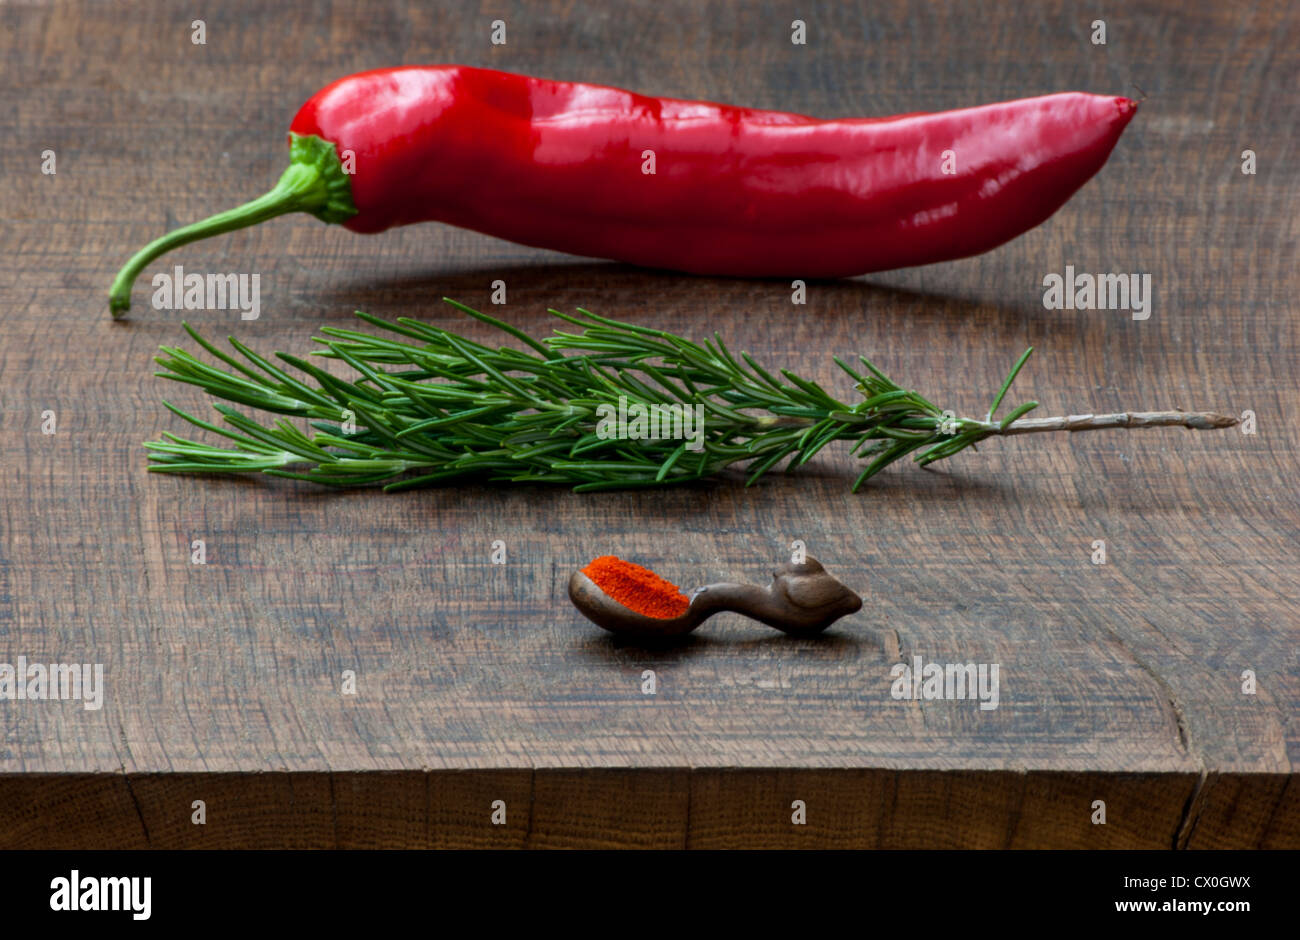 Fresh red pepper, sprig of rosemary, wooden measuring spoon of ground red pepper spice on dark, wooden chopping - Stock Image